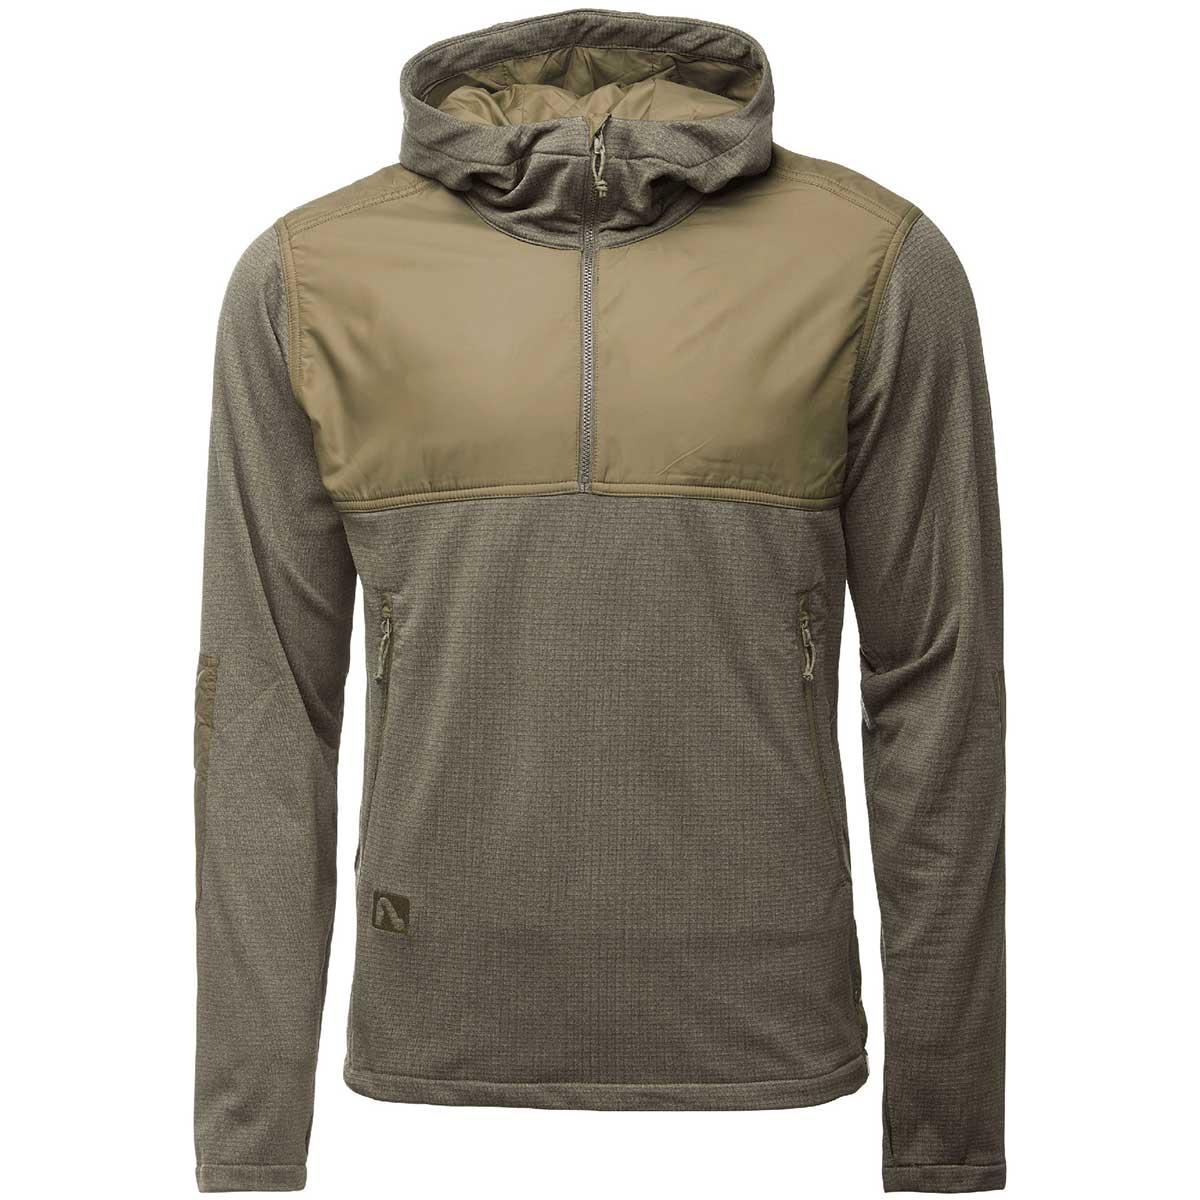 Flylow men's Holliday Hoody in Kombu and Kelp front view